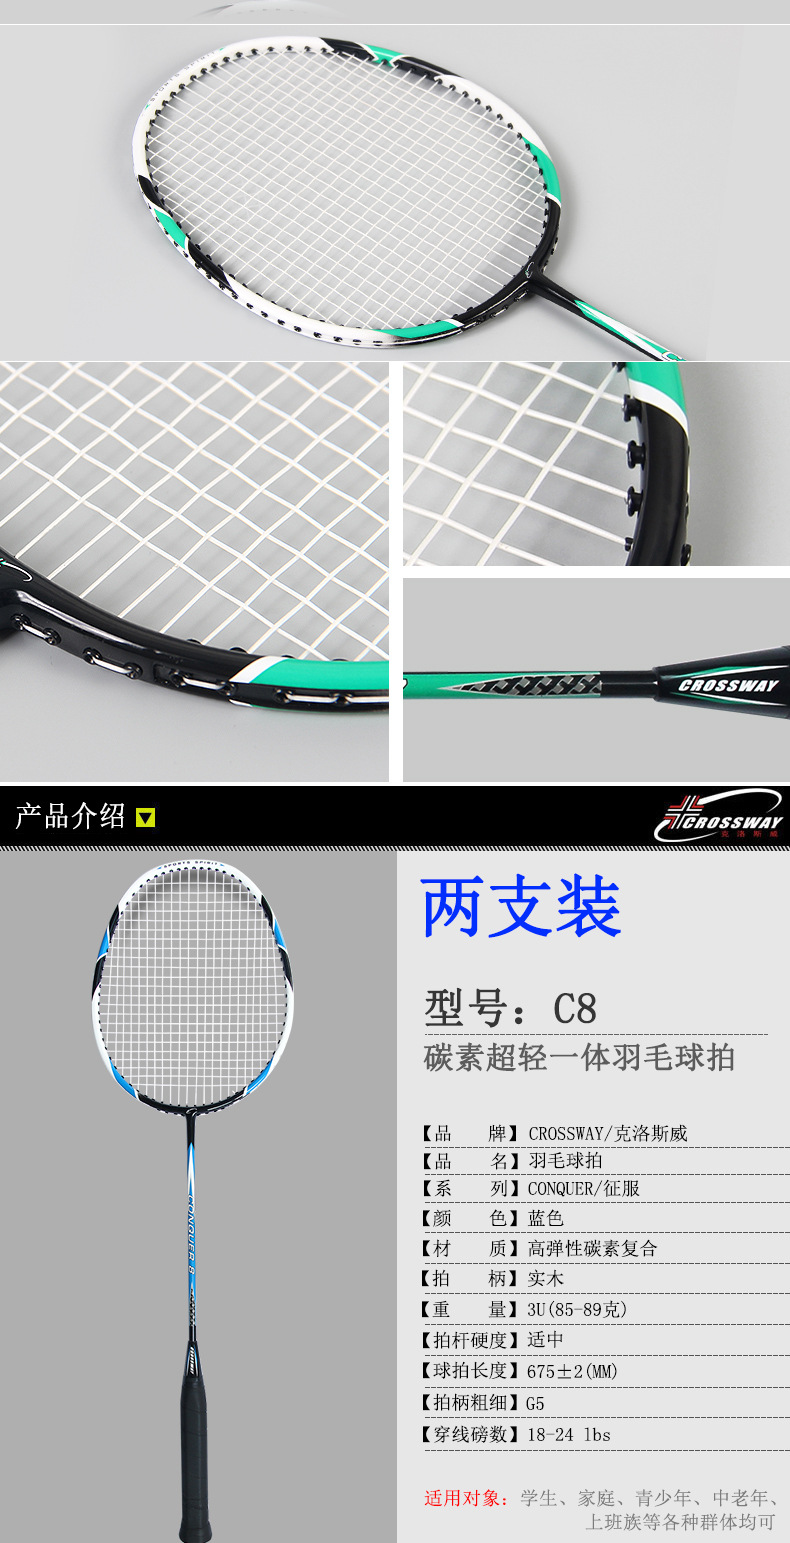 Crossway 2Pcs Best Doubles Match Badminton Rackets Carbon Smash Championships Shuttlecock Speedminton Racquets Equipment Kit Set 20